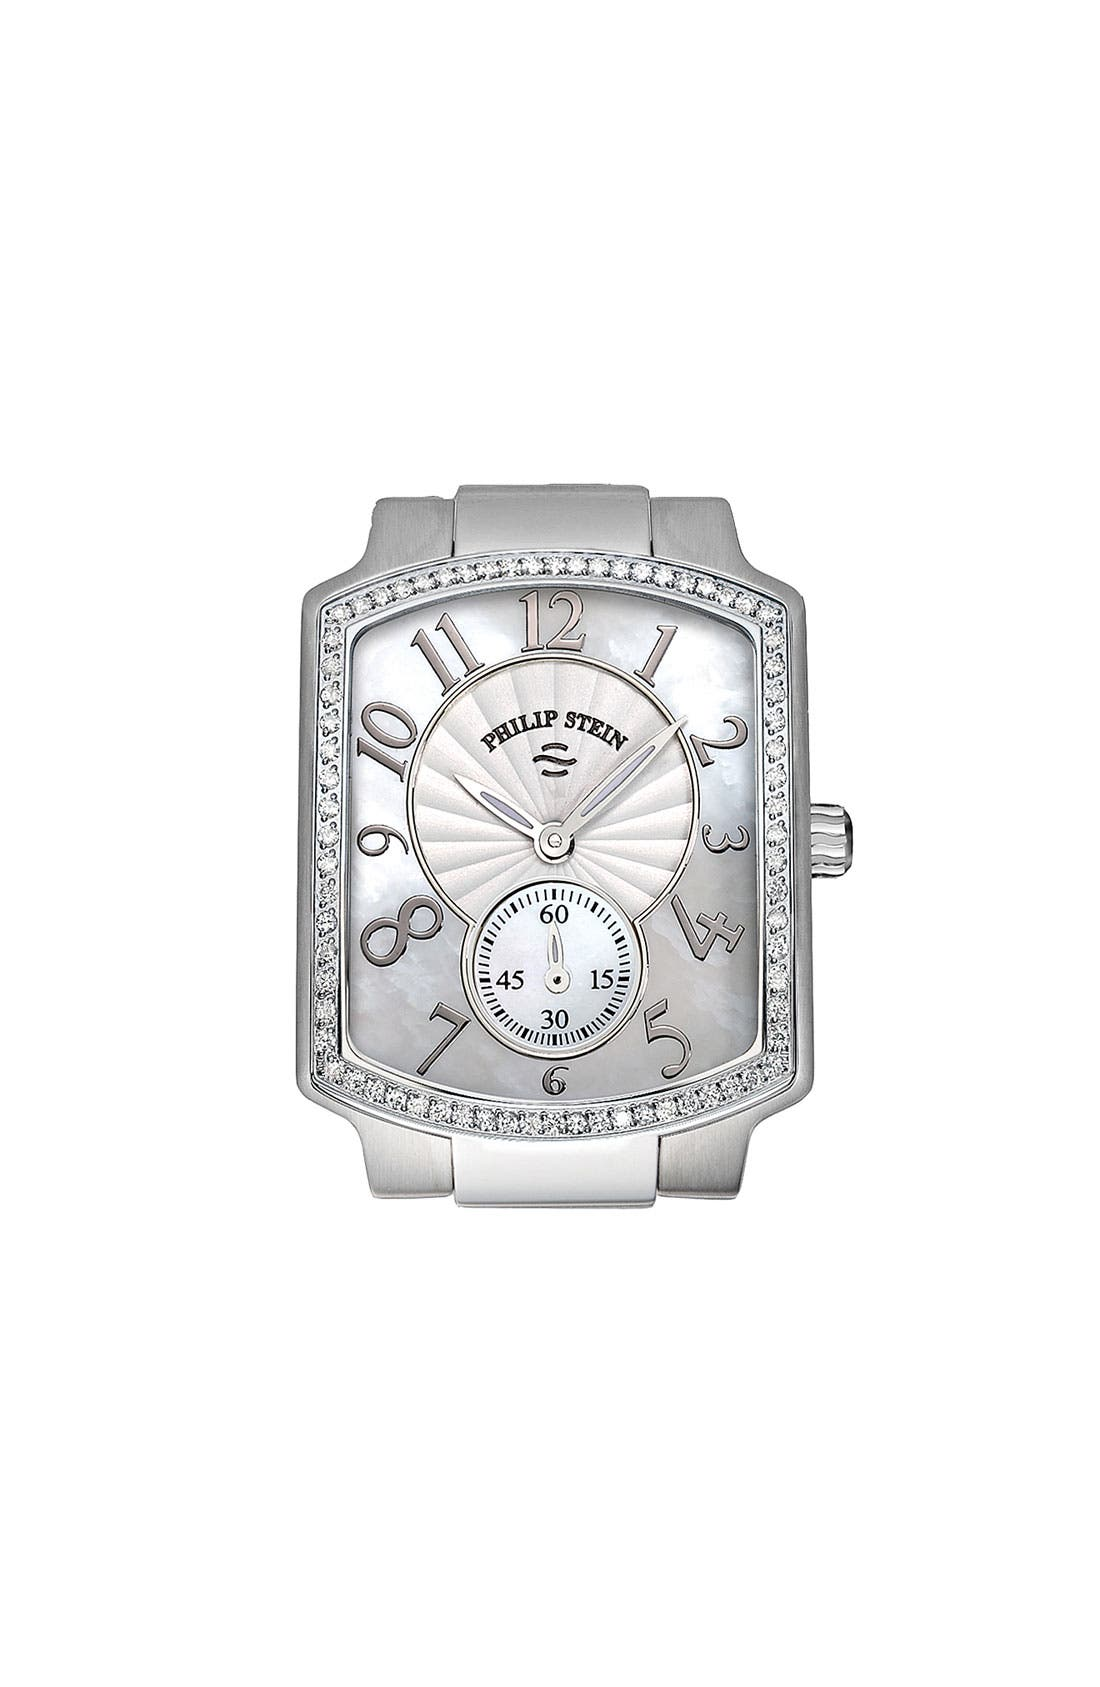 Main Image - Philip Stein® 'Classic' Ladies' Small Diamond Watch Case, 29mm x 37mm